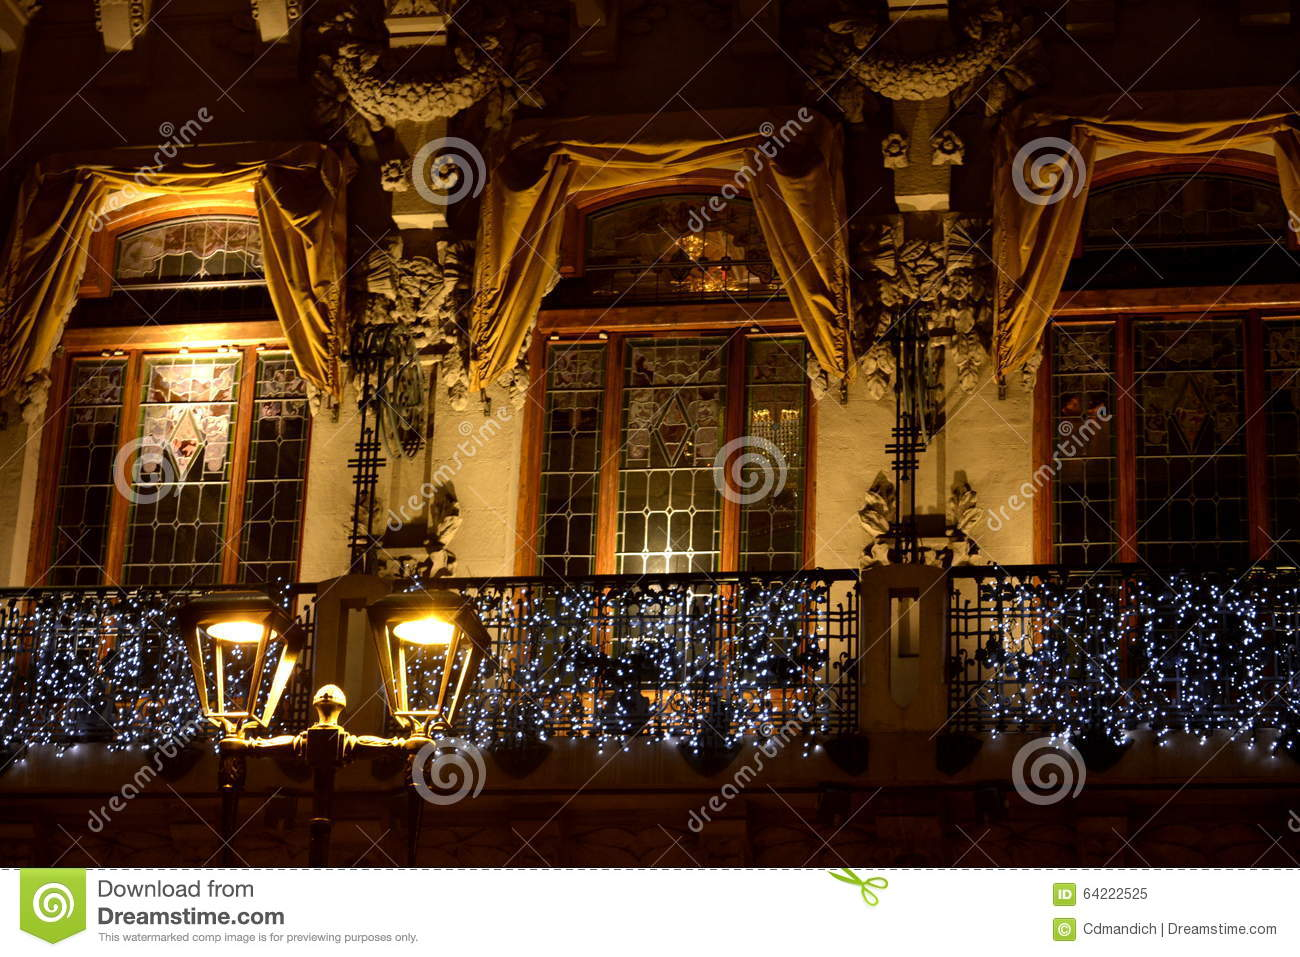 Elegant Building Dressed For Christmas Stock Image  Image